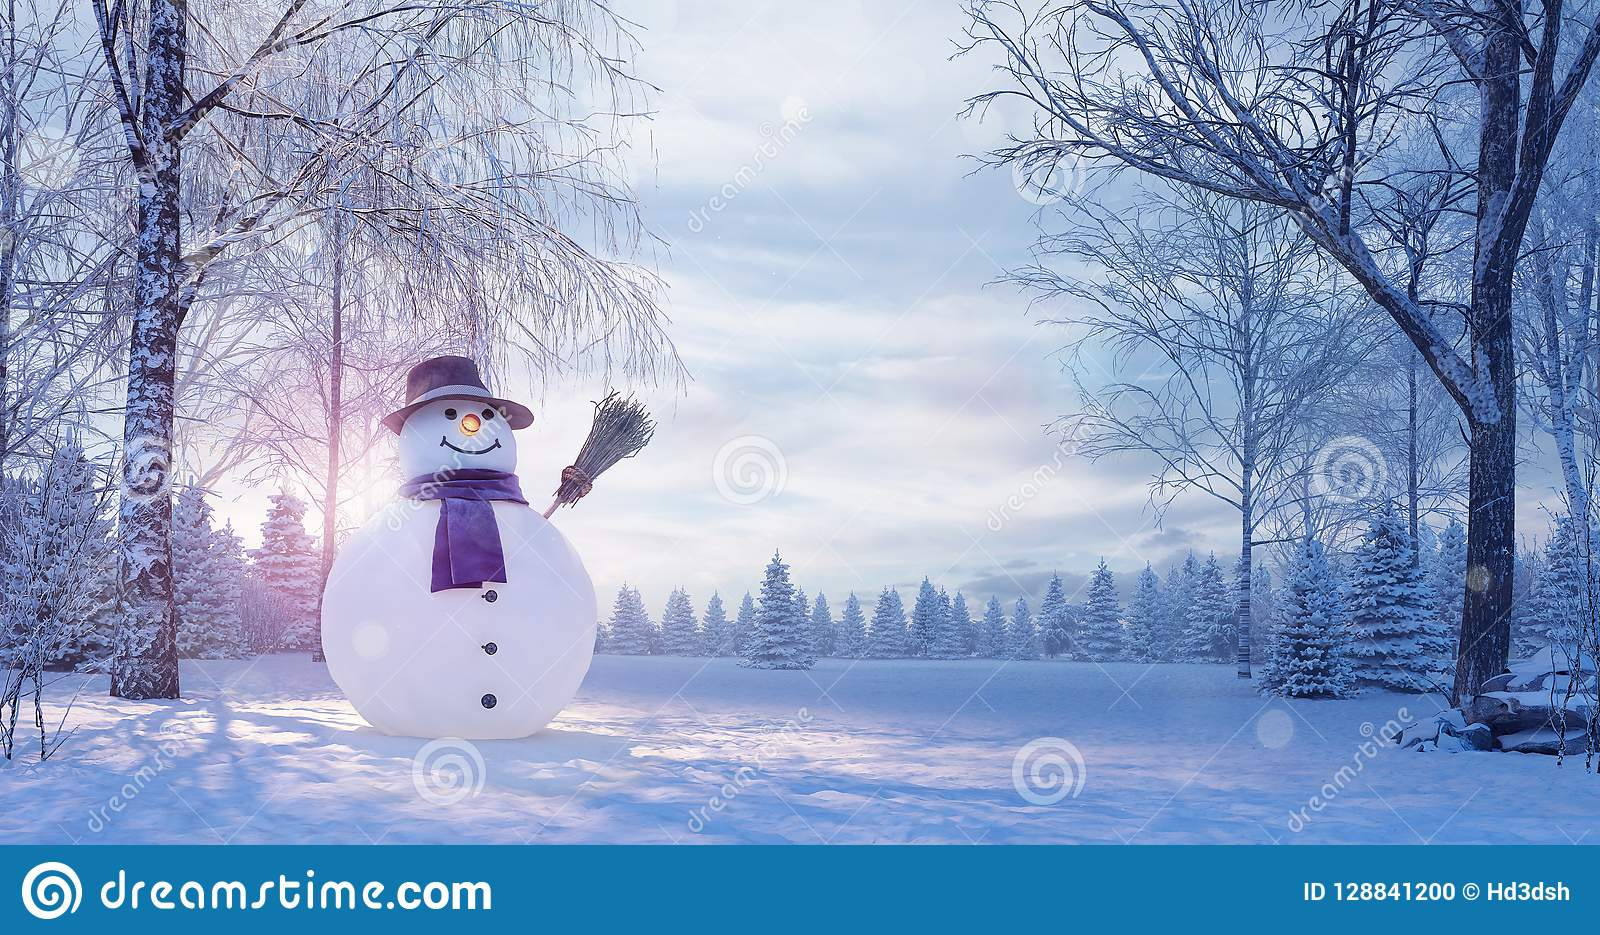 Winter landscape with Snowman, Christmas background